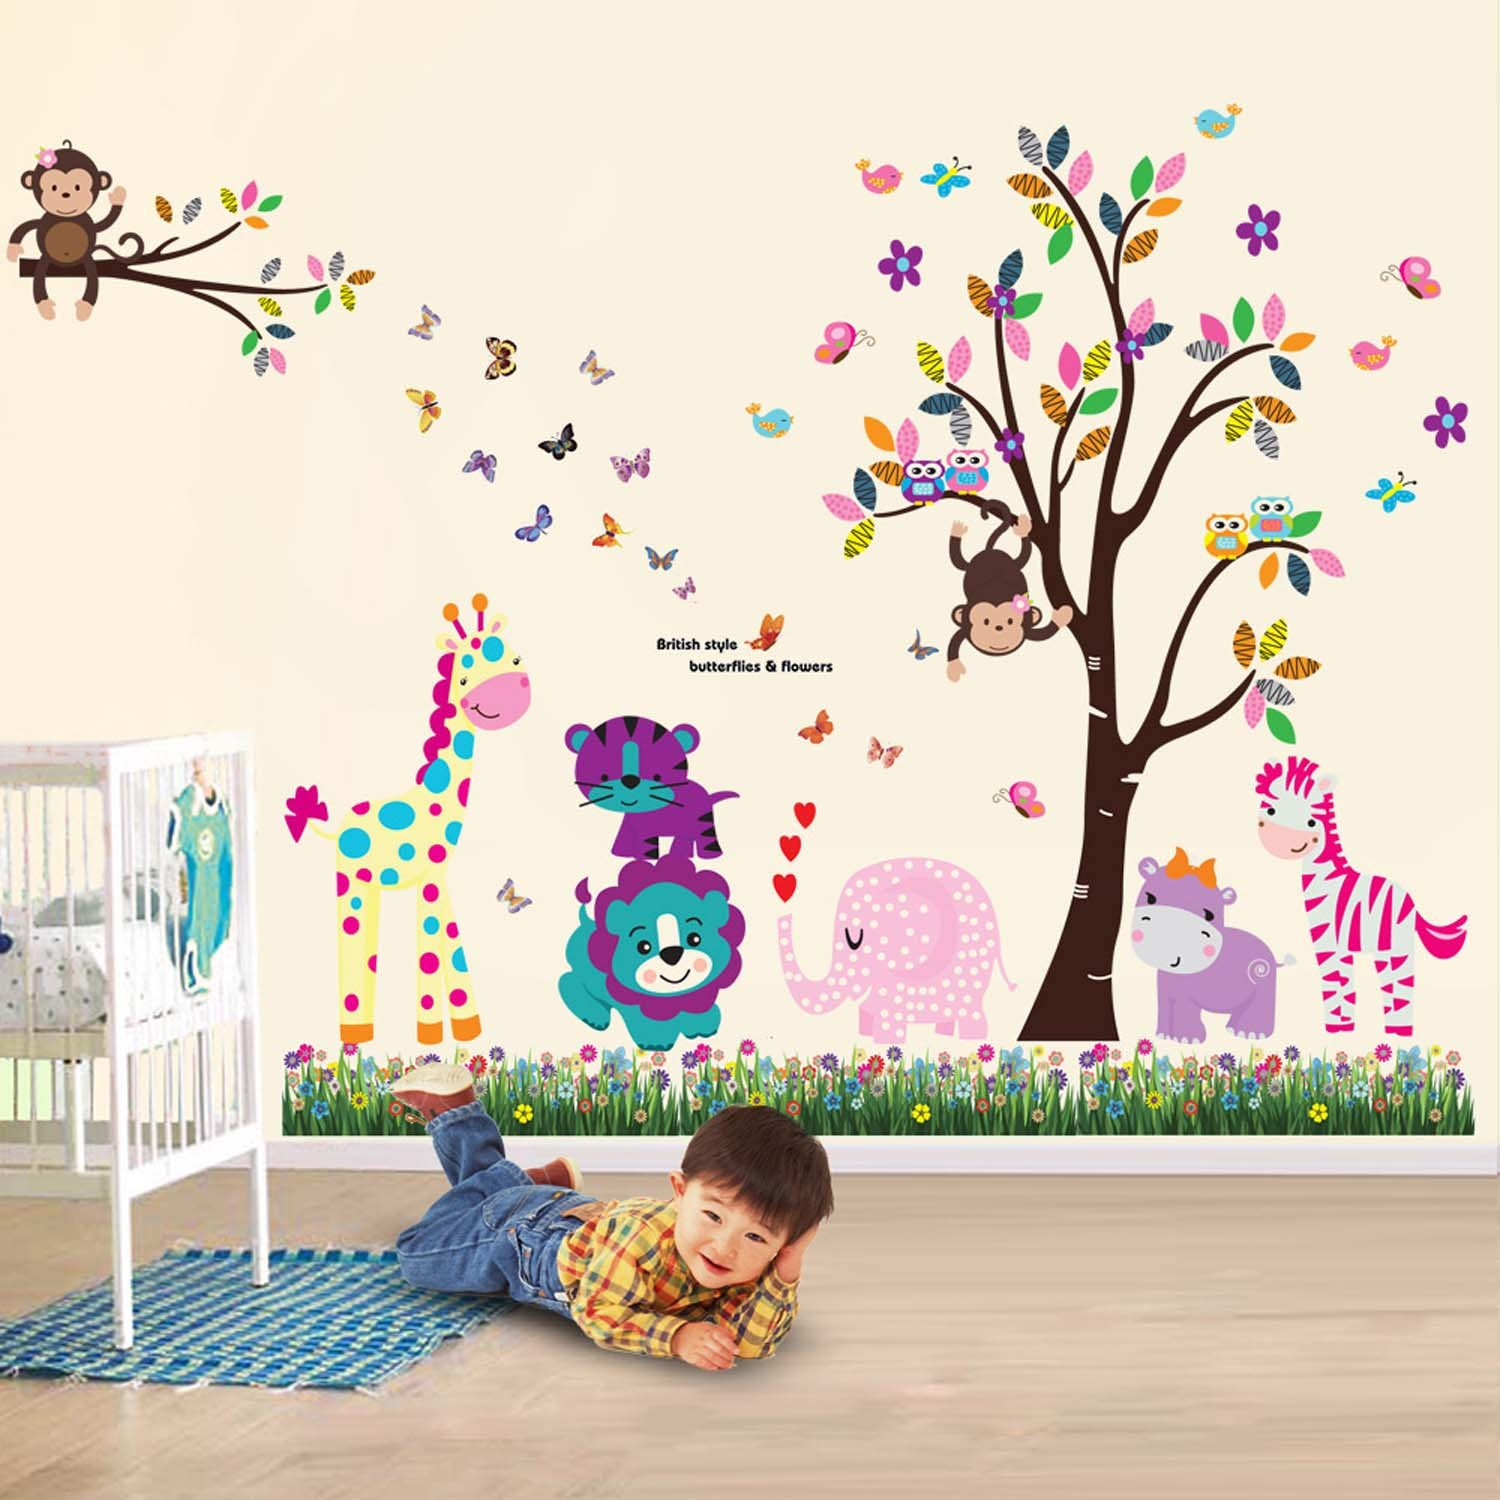 Walplus Wall Stickers Happy Animals Tree Butterfly Grass Removable  Self Adhesive Mural Art Decals Vinyl Home Decoration DIY Living Bedroom  Office Décor ... Part 30